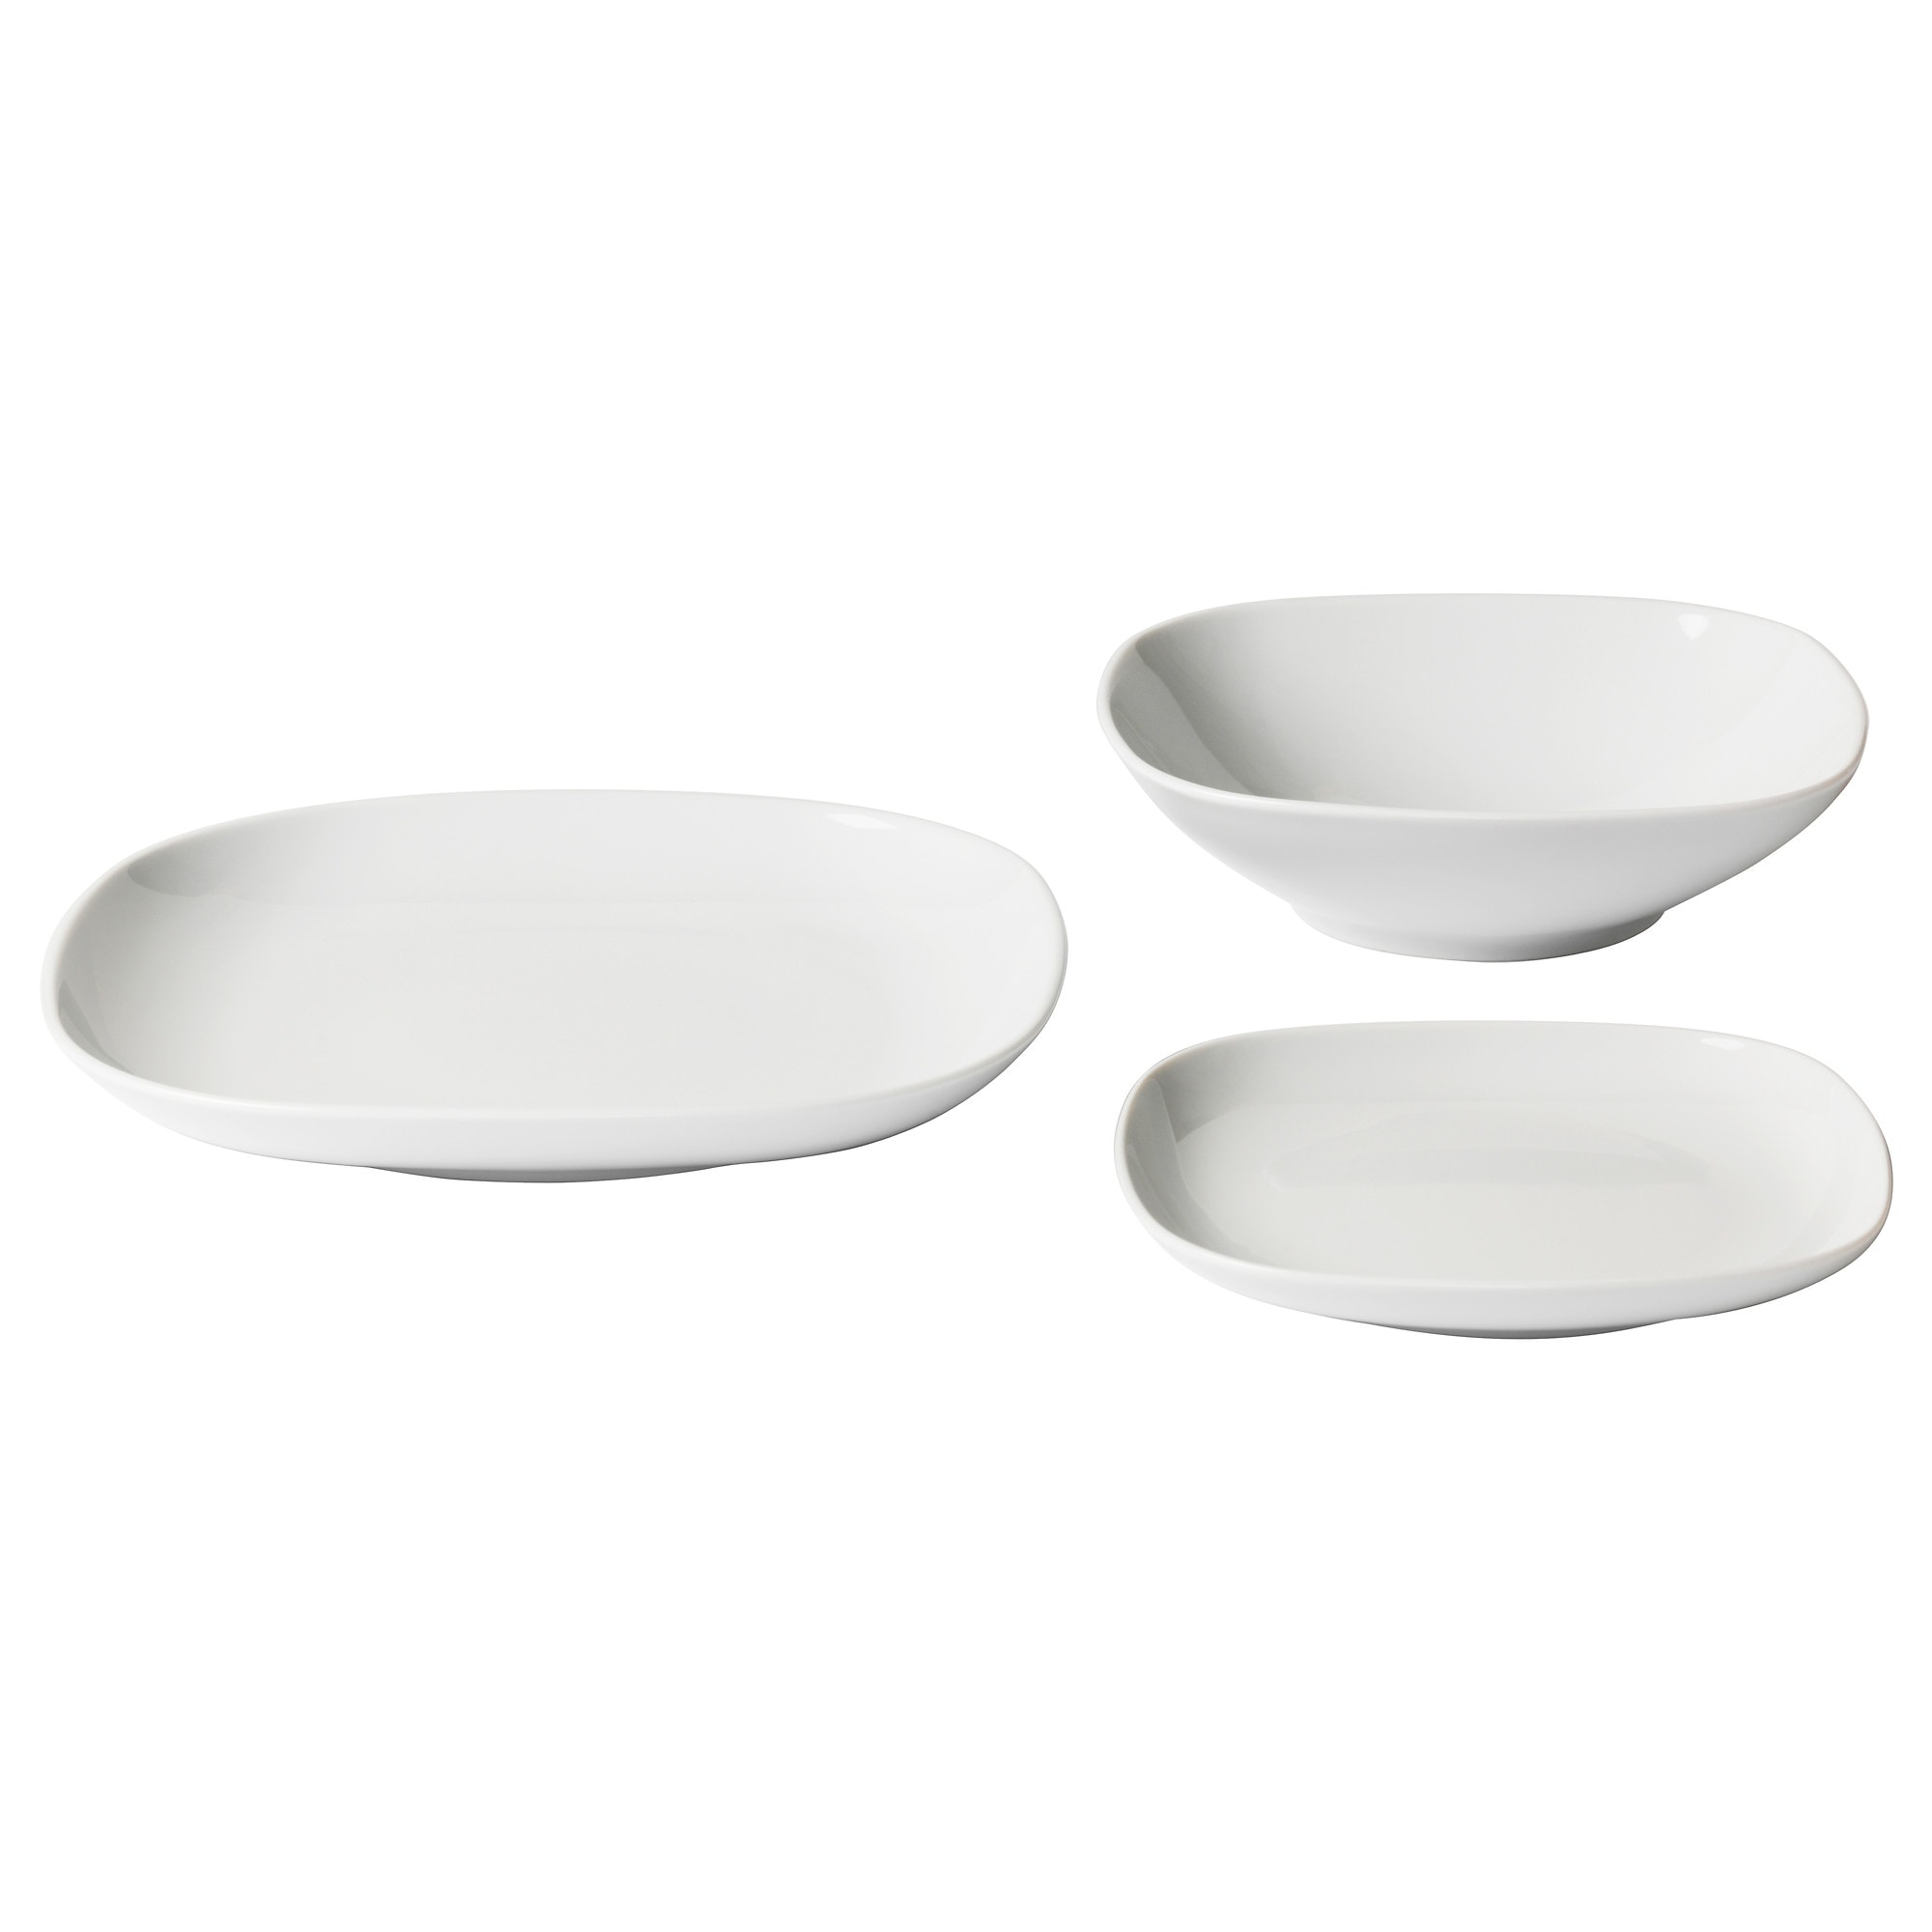 vrdera 18piece dinnerware set white - White Dinnerware Sets